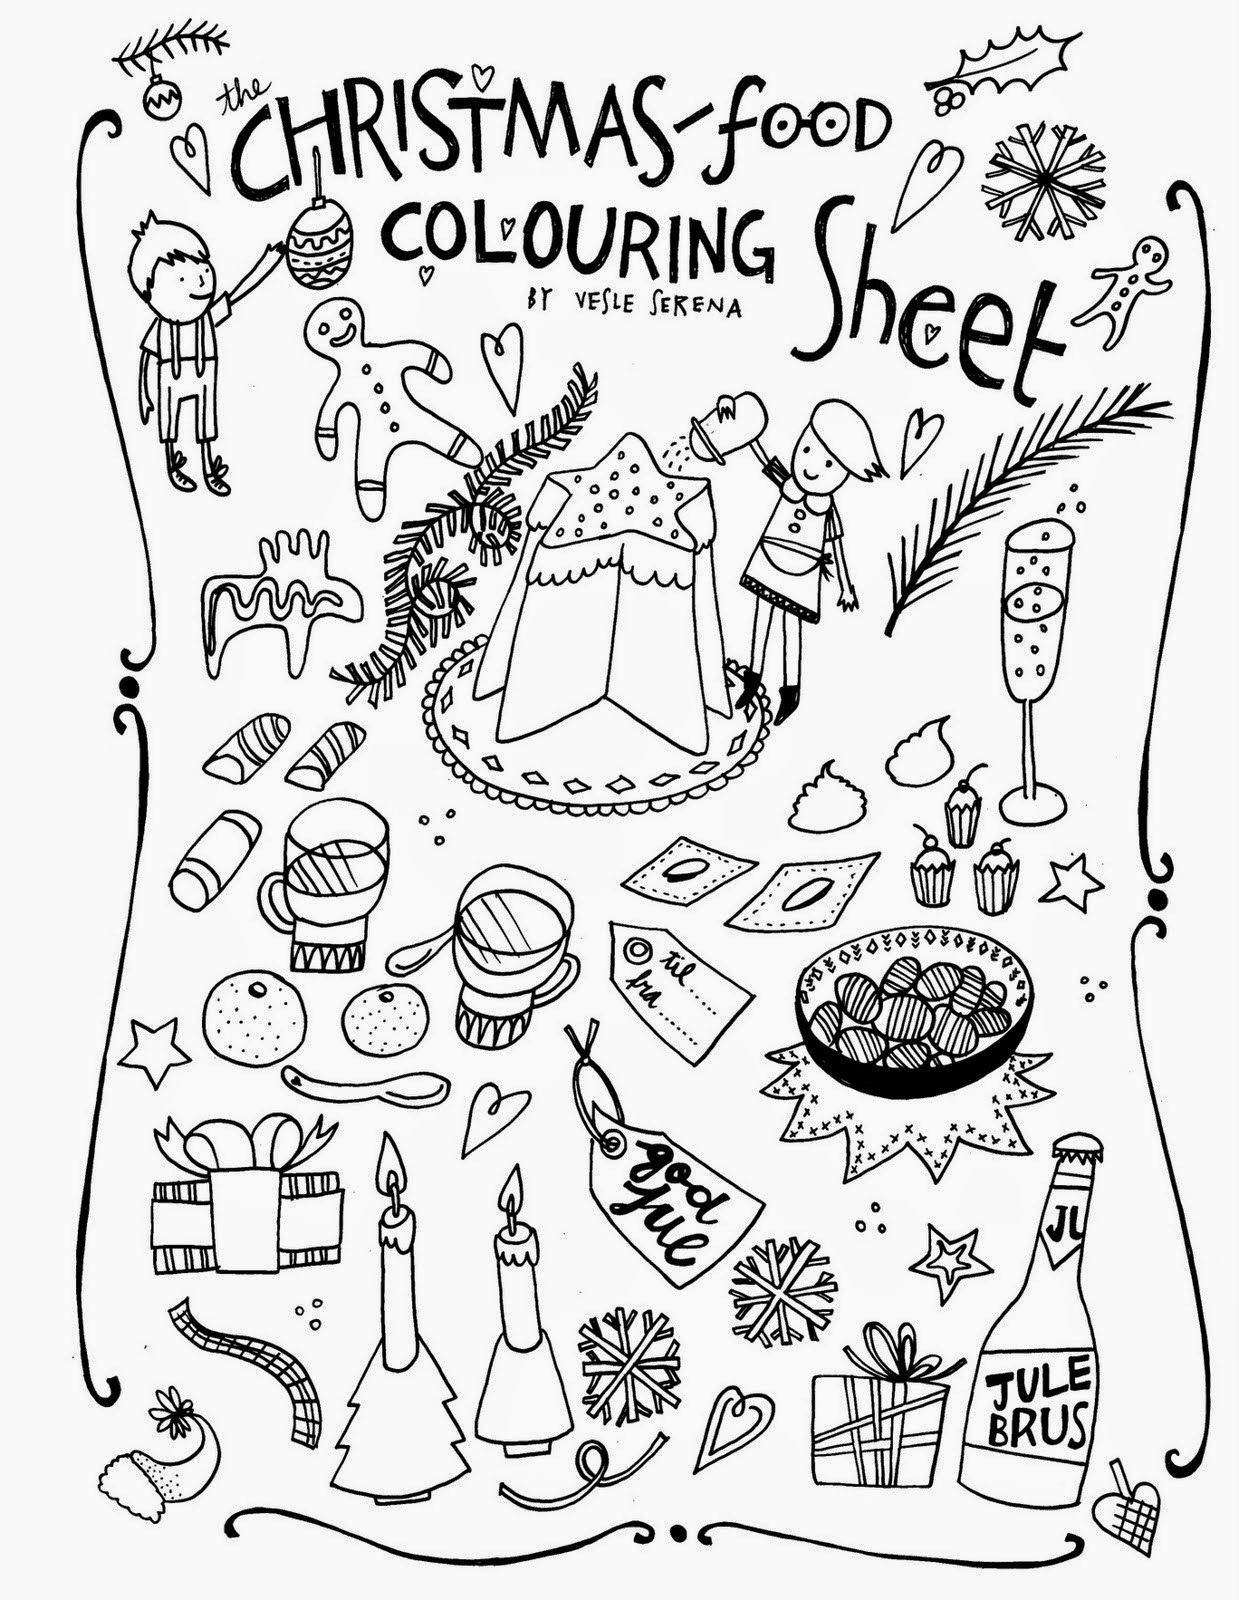 Xmas Coloring Pages Cute And Whimsical Christmas